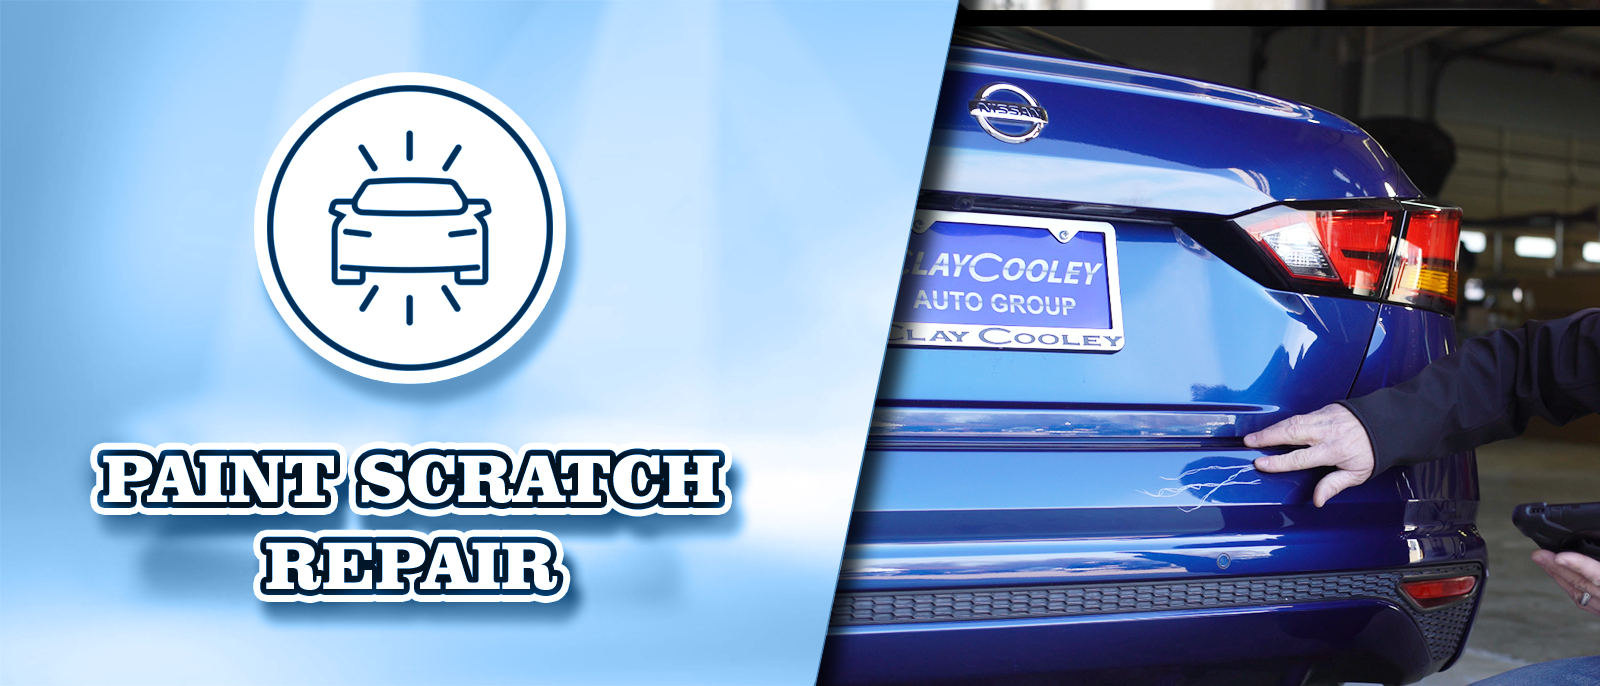 Paint Scratch Repair at Clay Cooley Hyundai of Rockwall